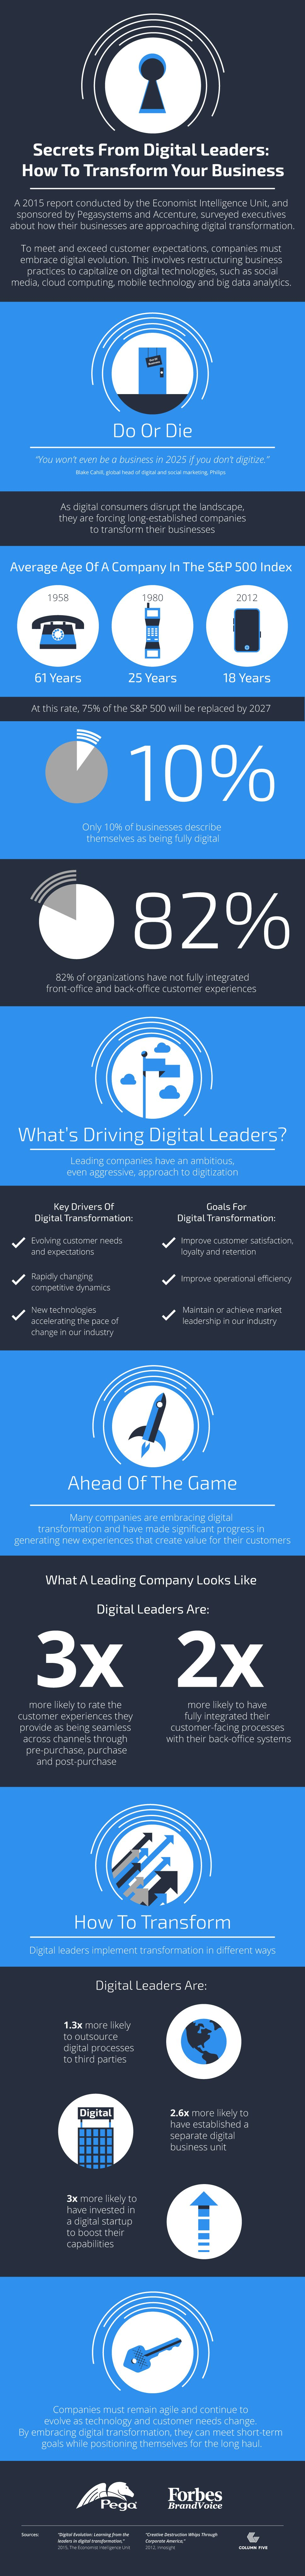 Secrets From Digital Leaders: How To Transform Your Business